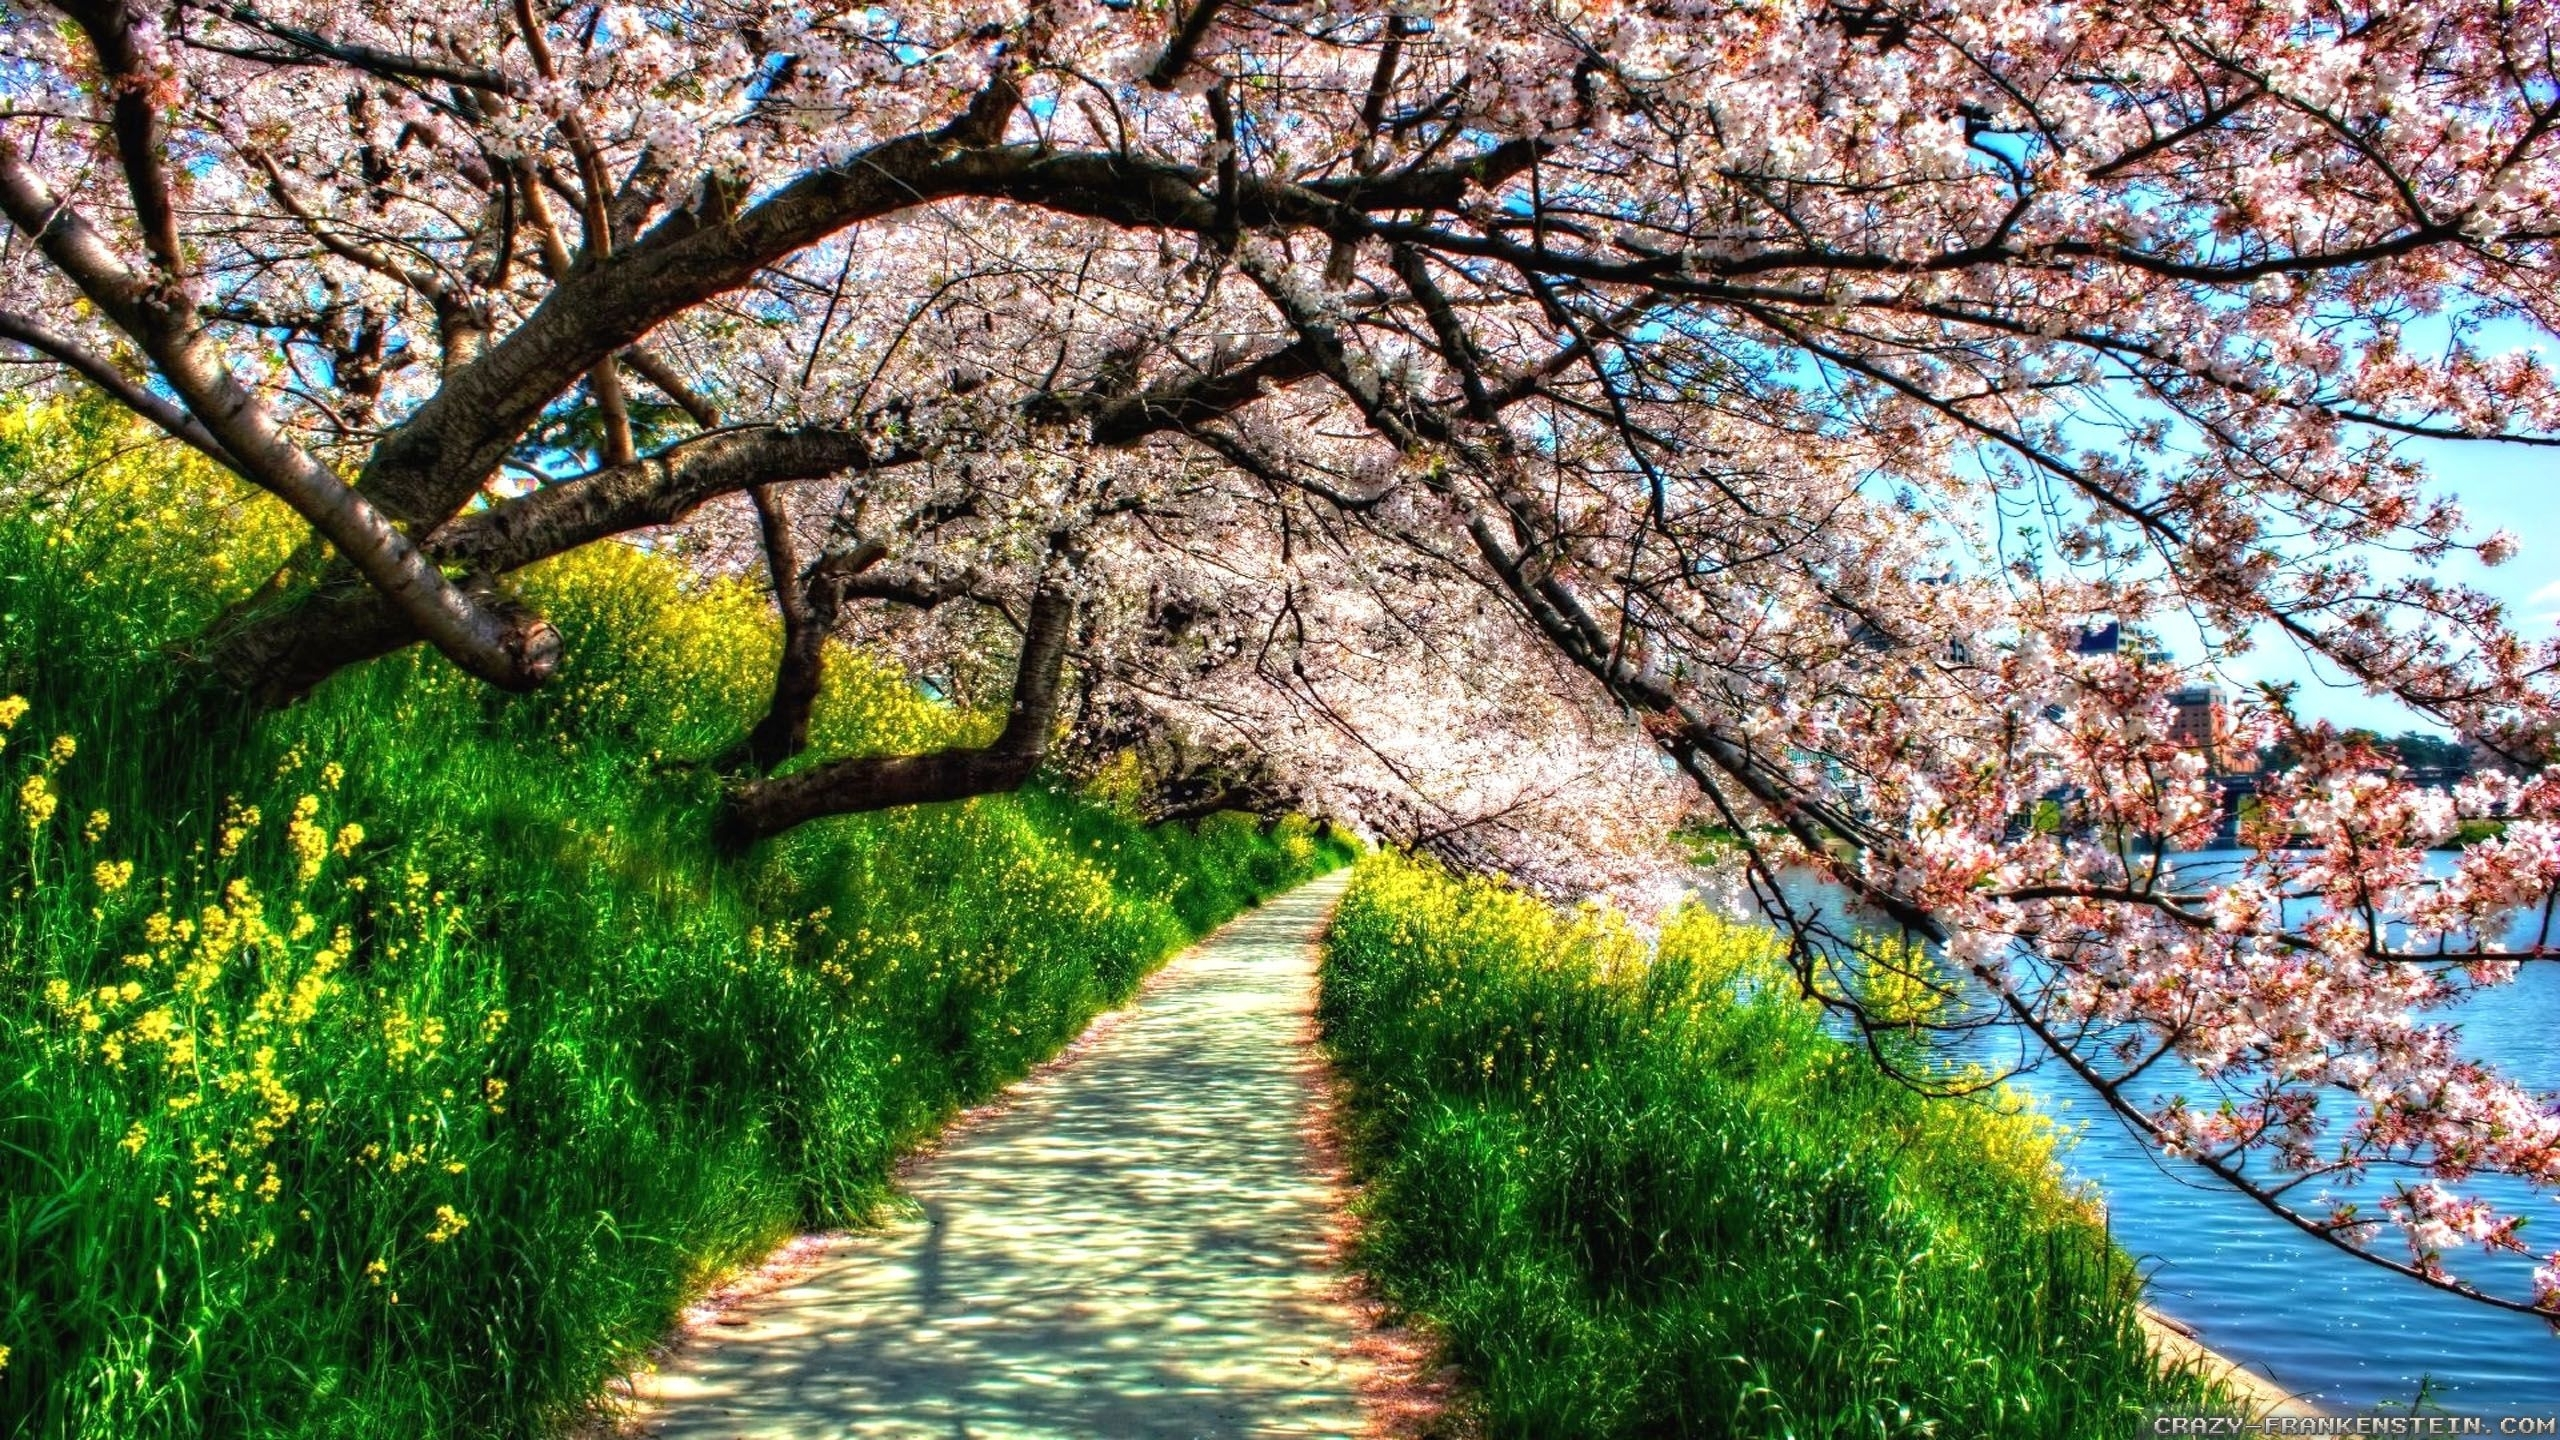 spring nature hd wallpapers - wallpaper cave